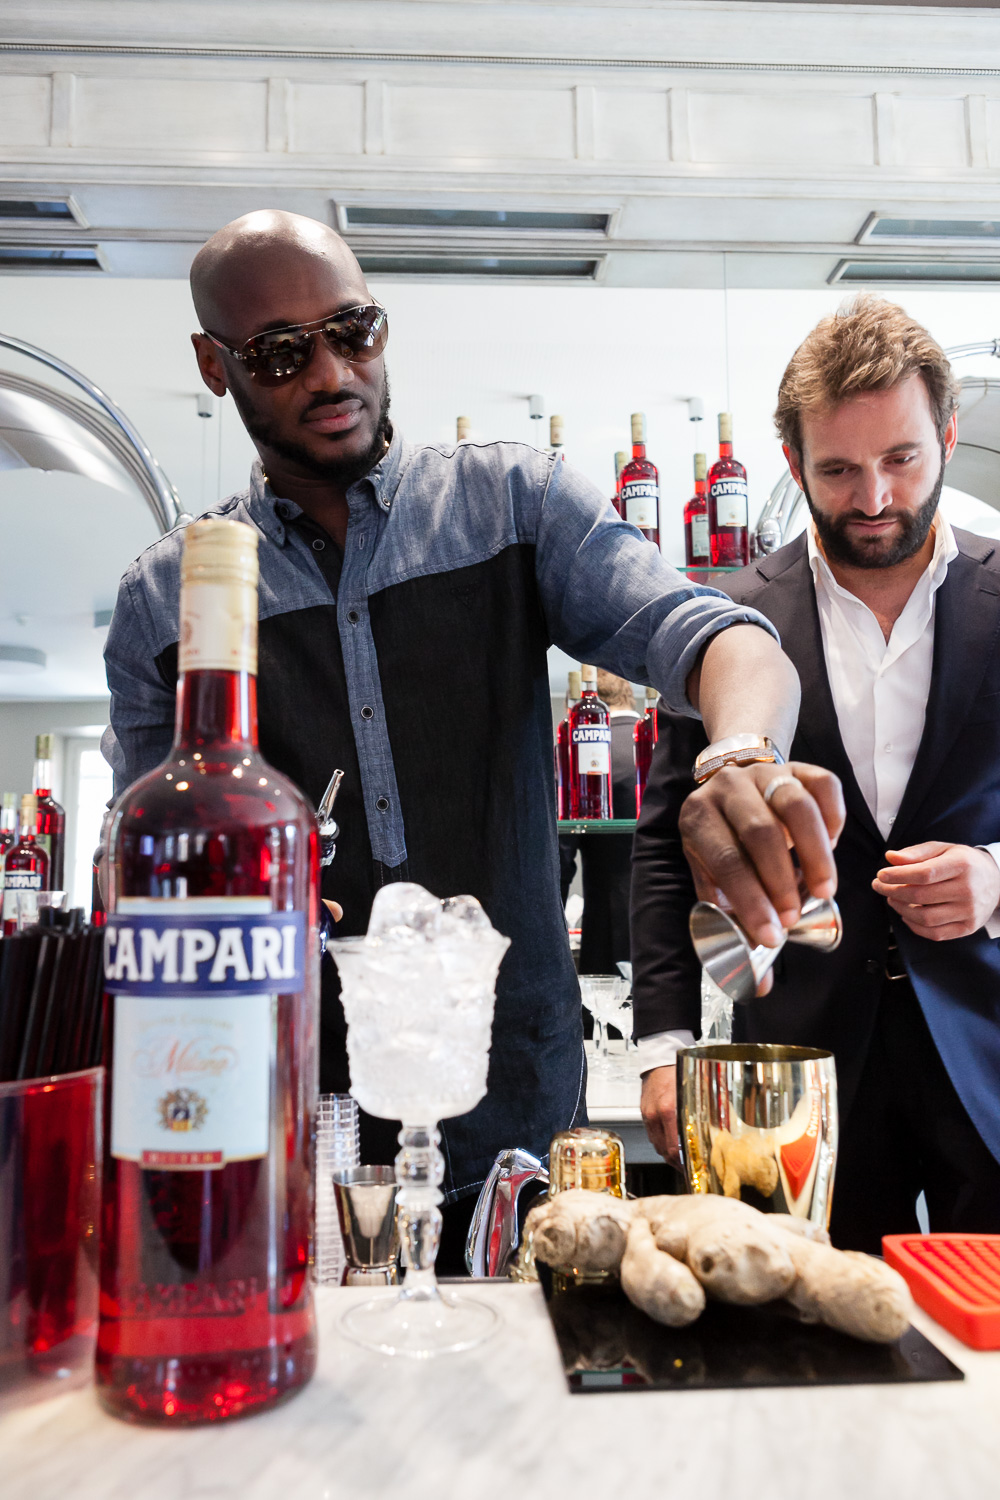 2Baba at Home of Campari 13